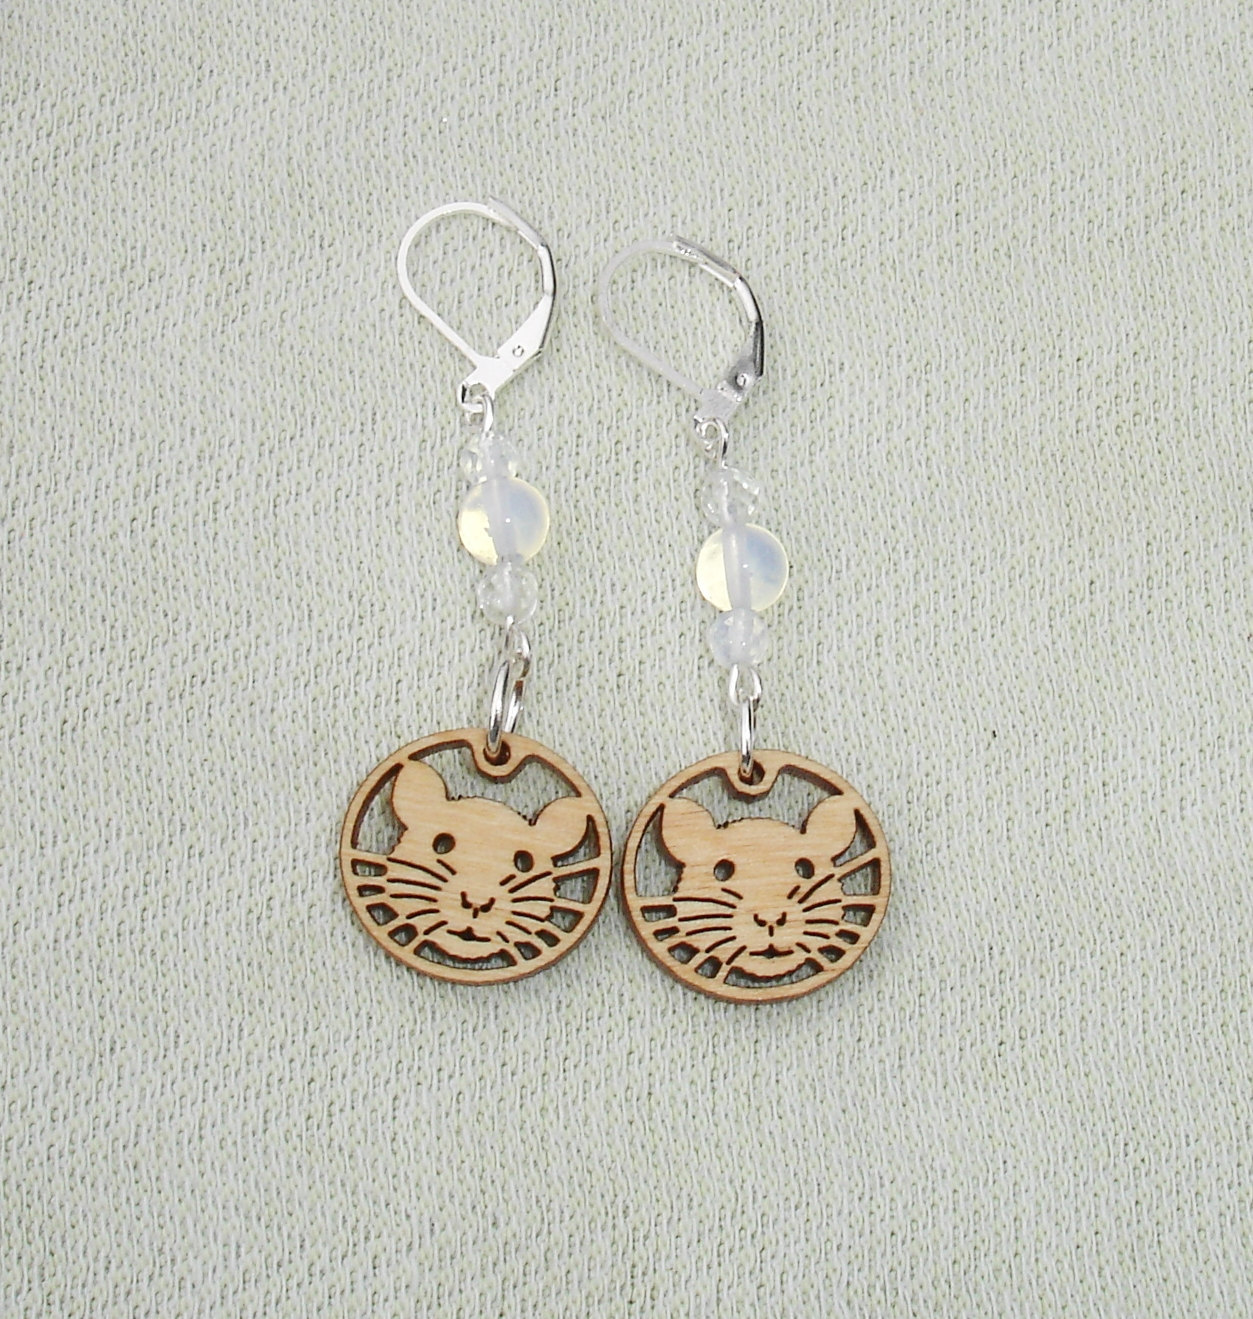 Cute Rat, Moonstone Gemstone Dangle Earrings with leverbacks - Rat LOVERS